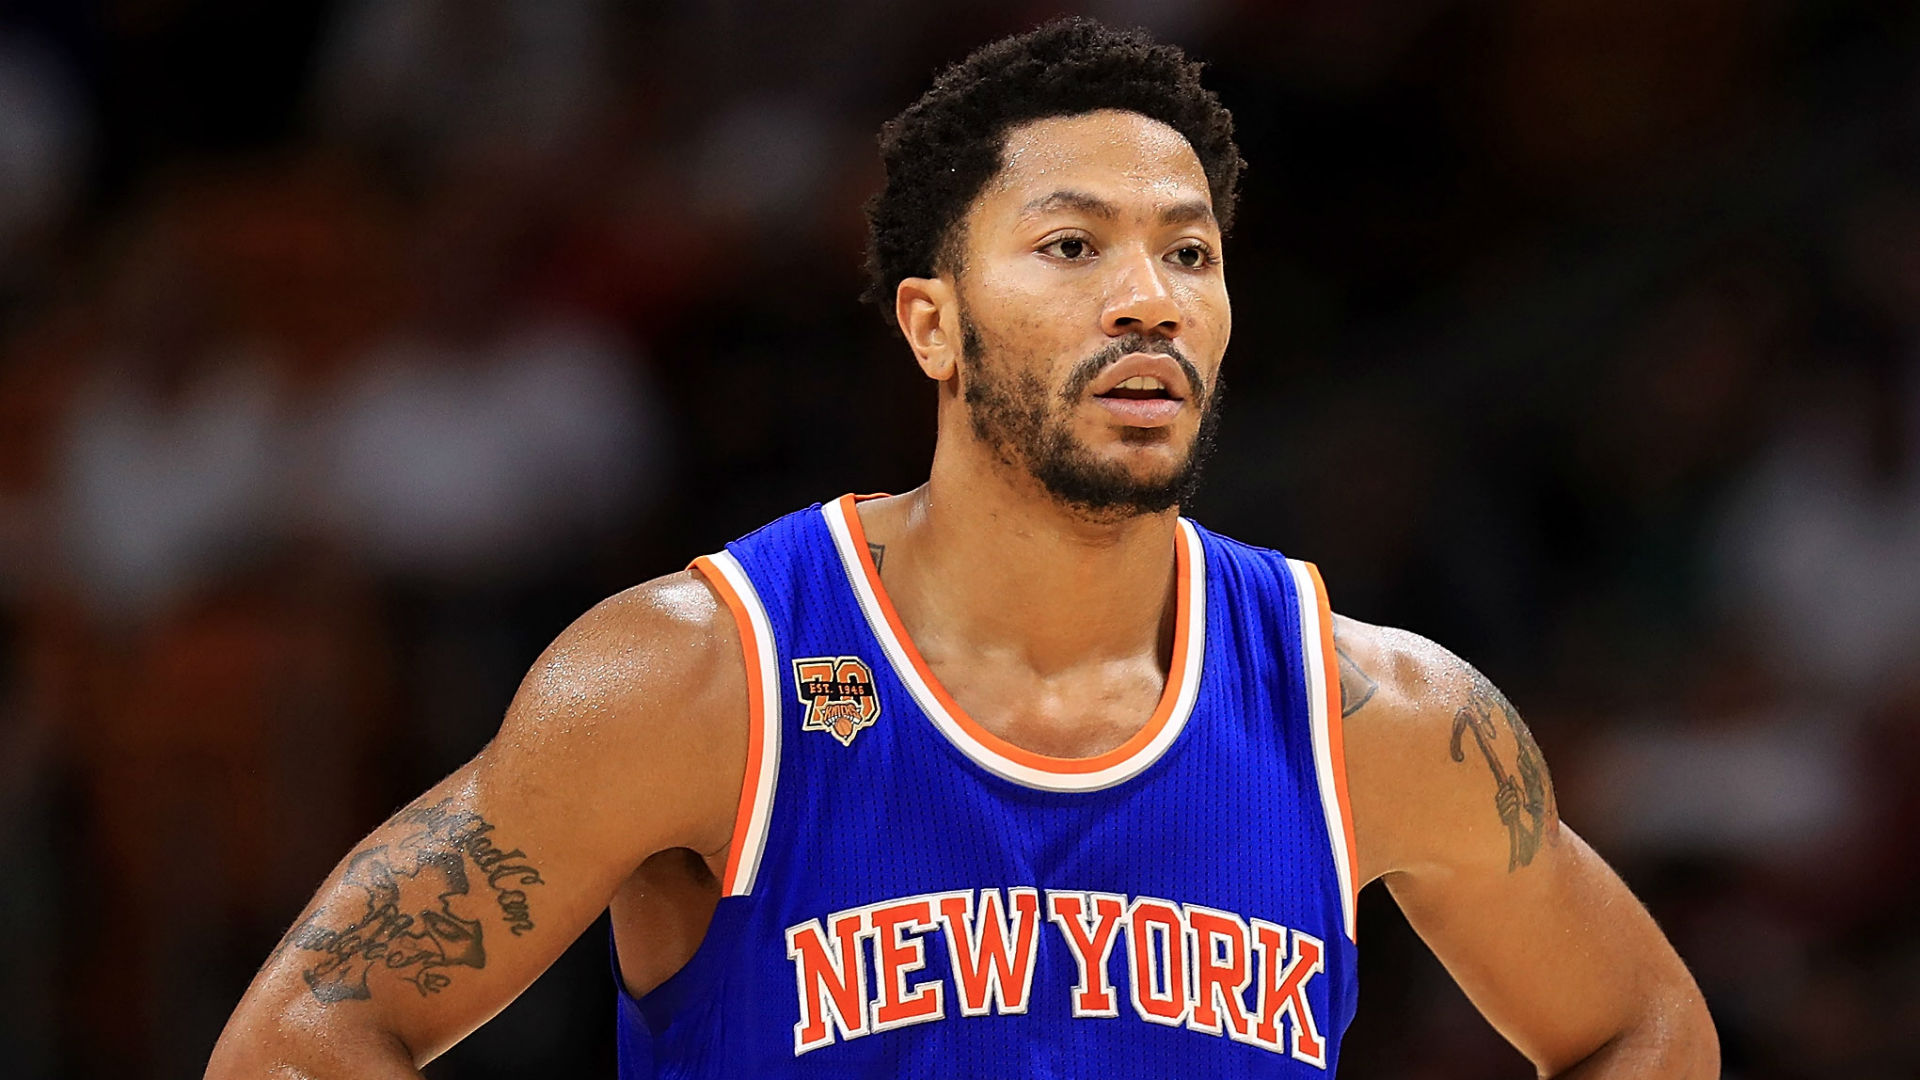 derrick rose hooky fine from knicks 2017 images